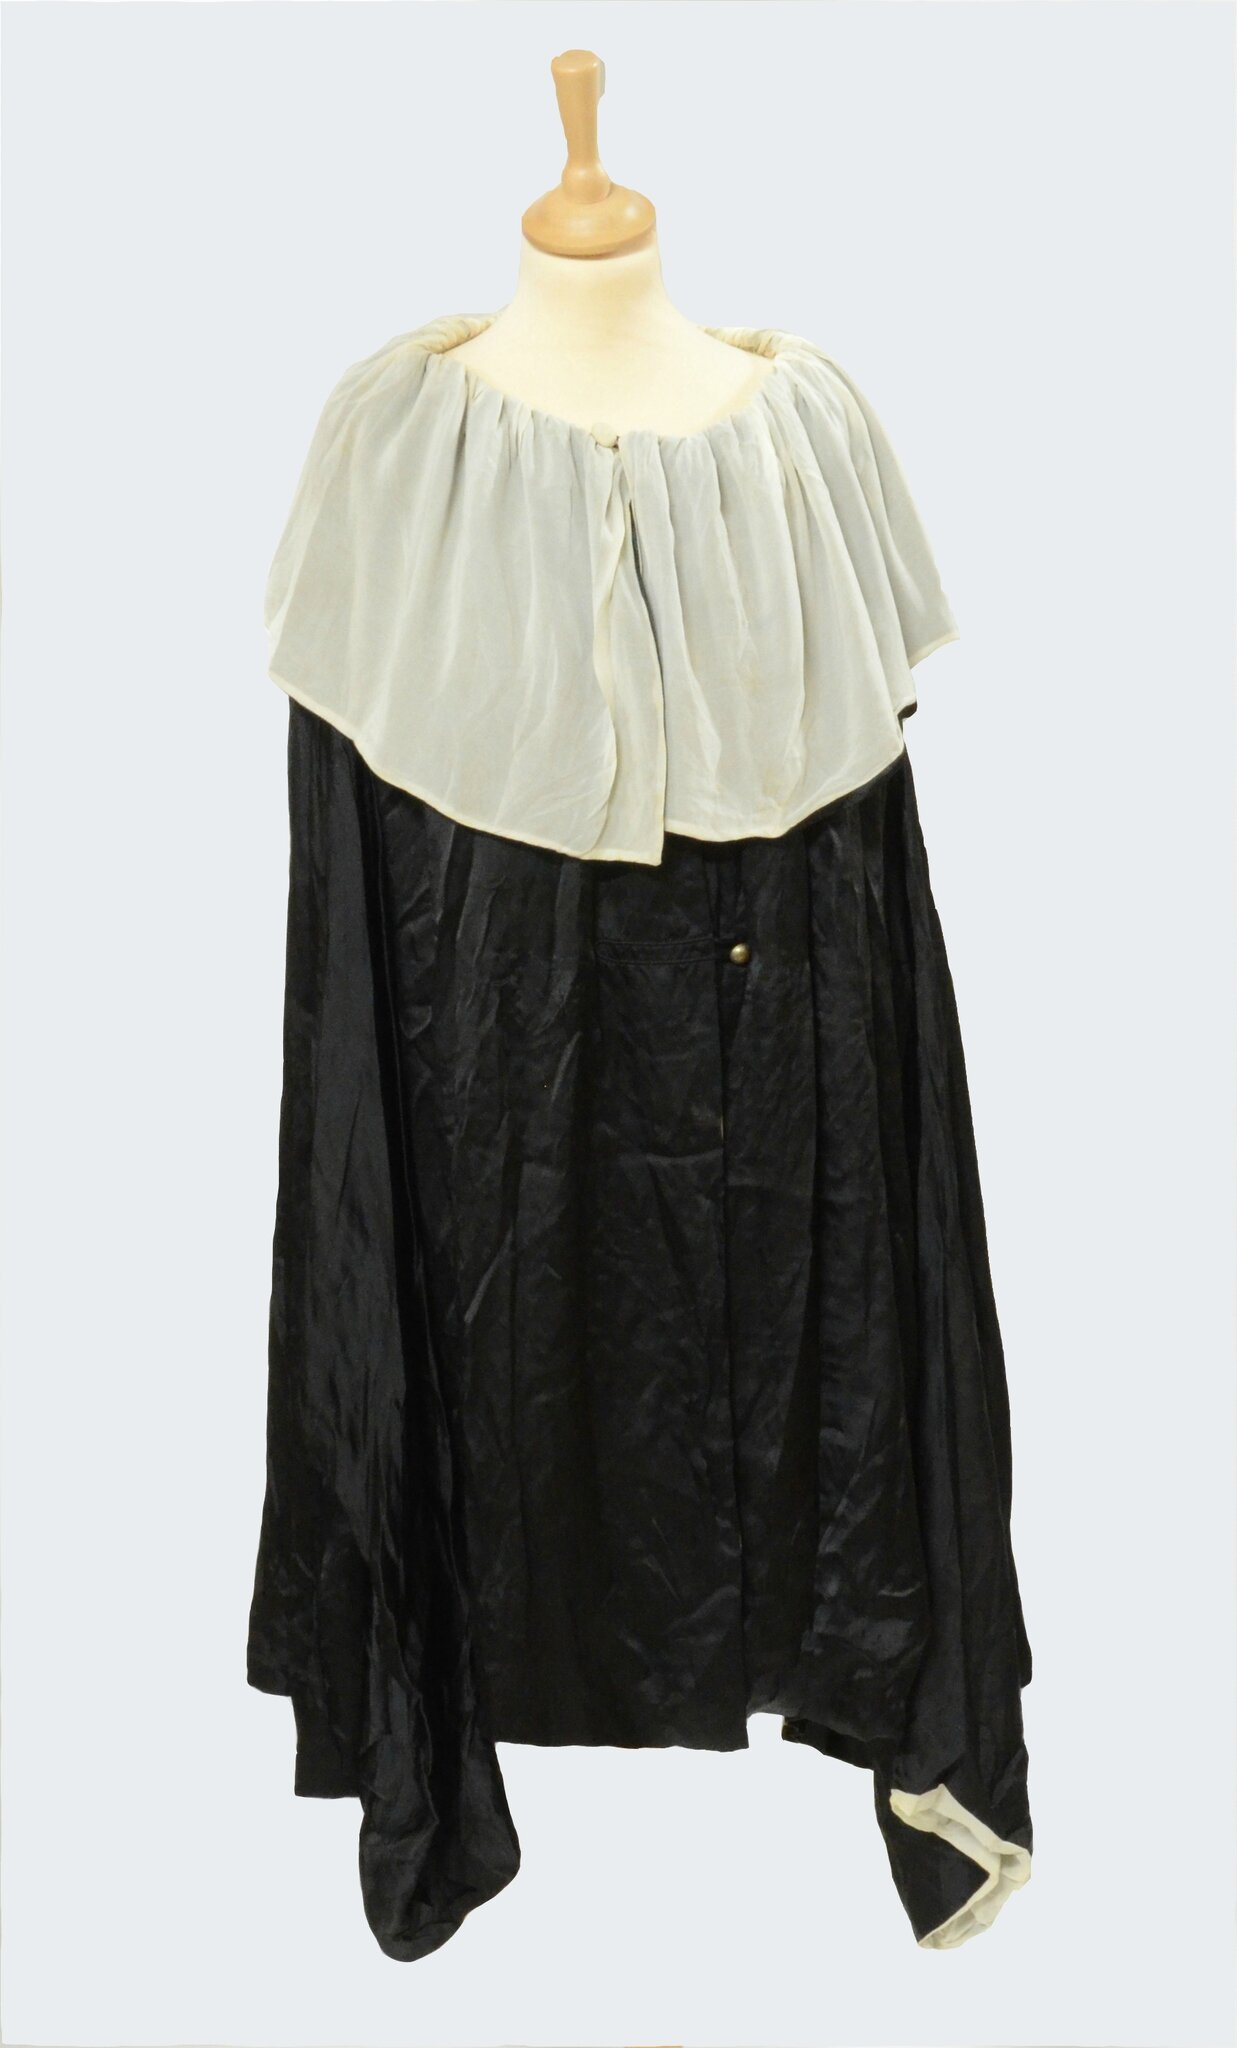 Paul Poiret: Manteau du soir « Manteau WILLETTE », circa 1910- 1915